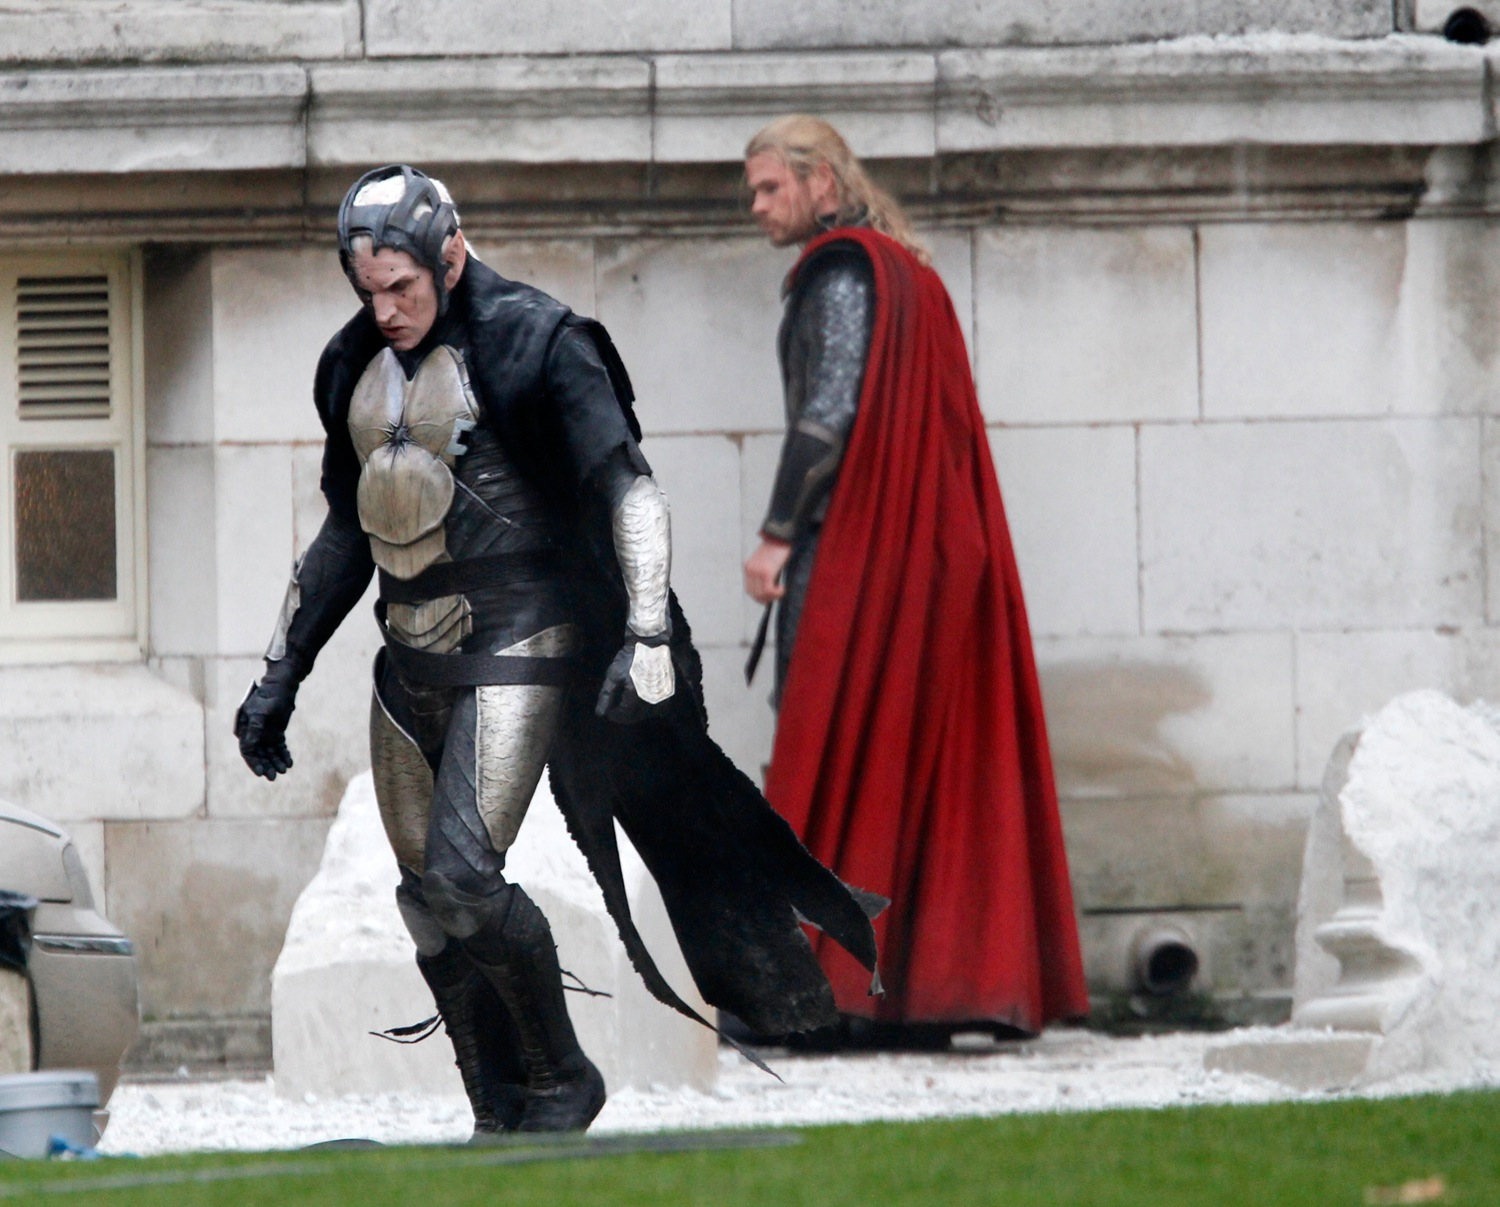 http://3.bp.blogspot.com/-pa9zKyRJ8TA/UObOLh09iDI/AAAAAAAAAnM/lPiPk6fnIJc/s1600/Thor-The-Dark-World-On-The-Set-chris-hemsworth-32935830-1500-1207.jpg